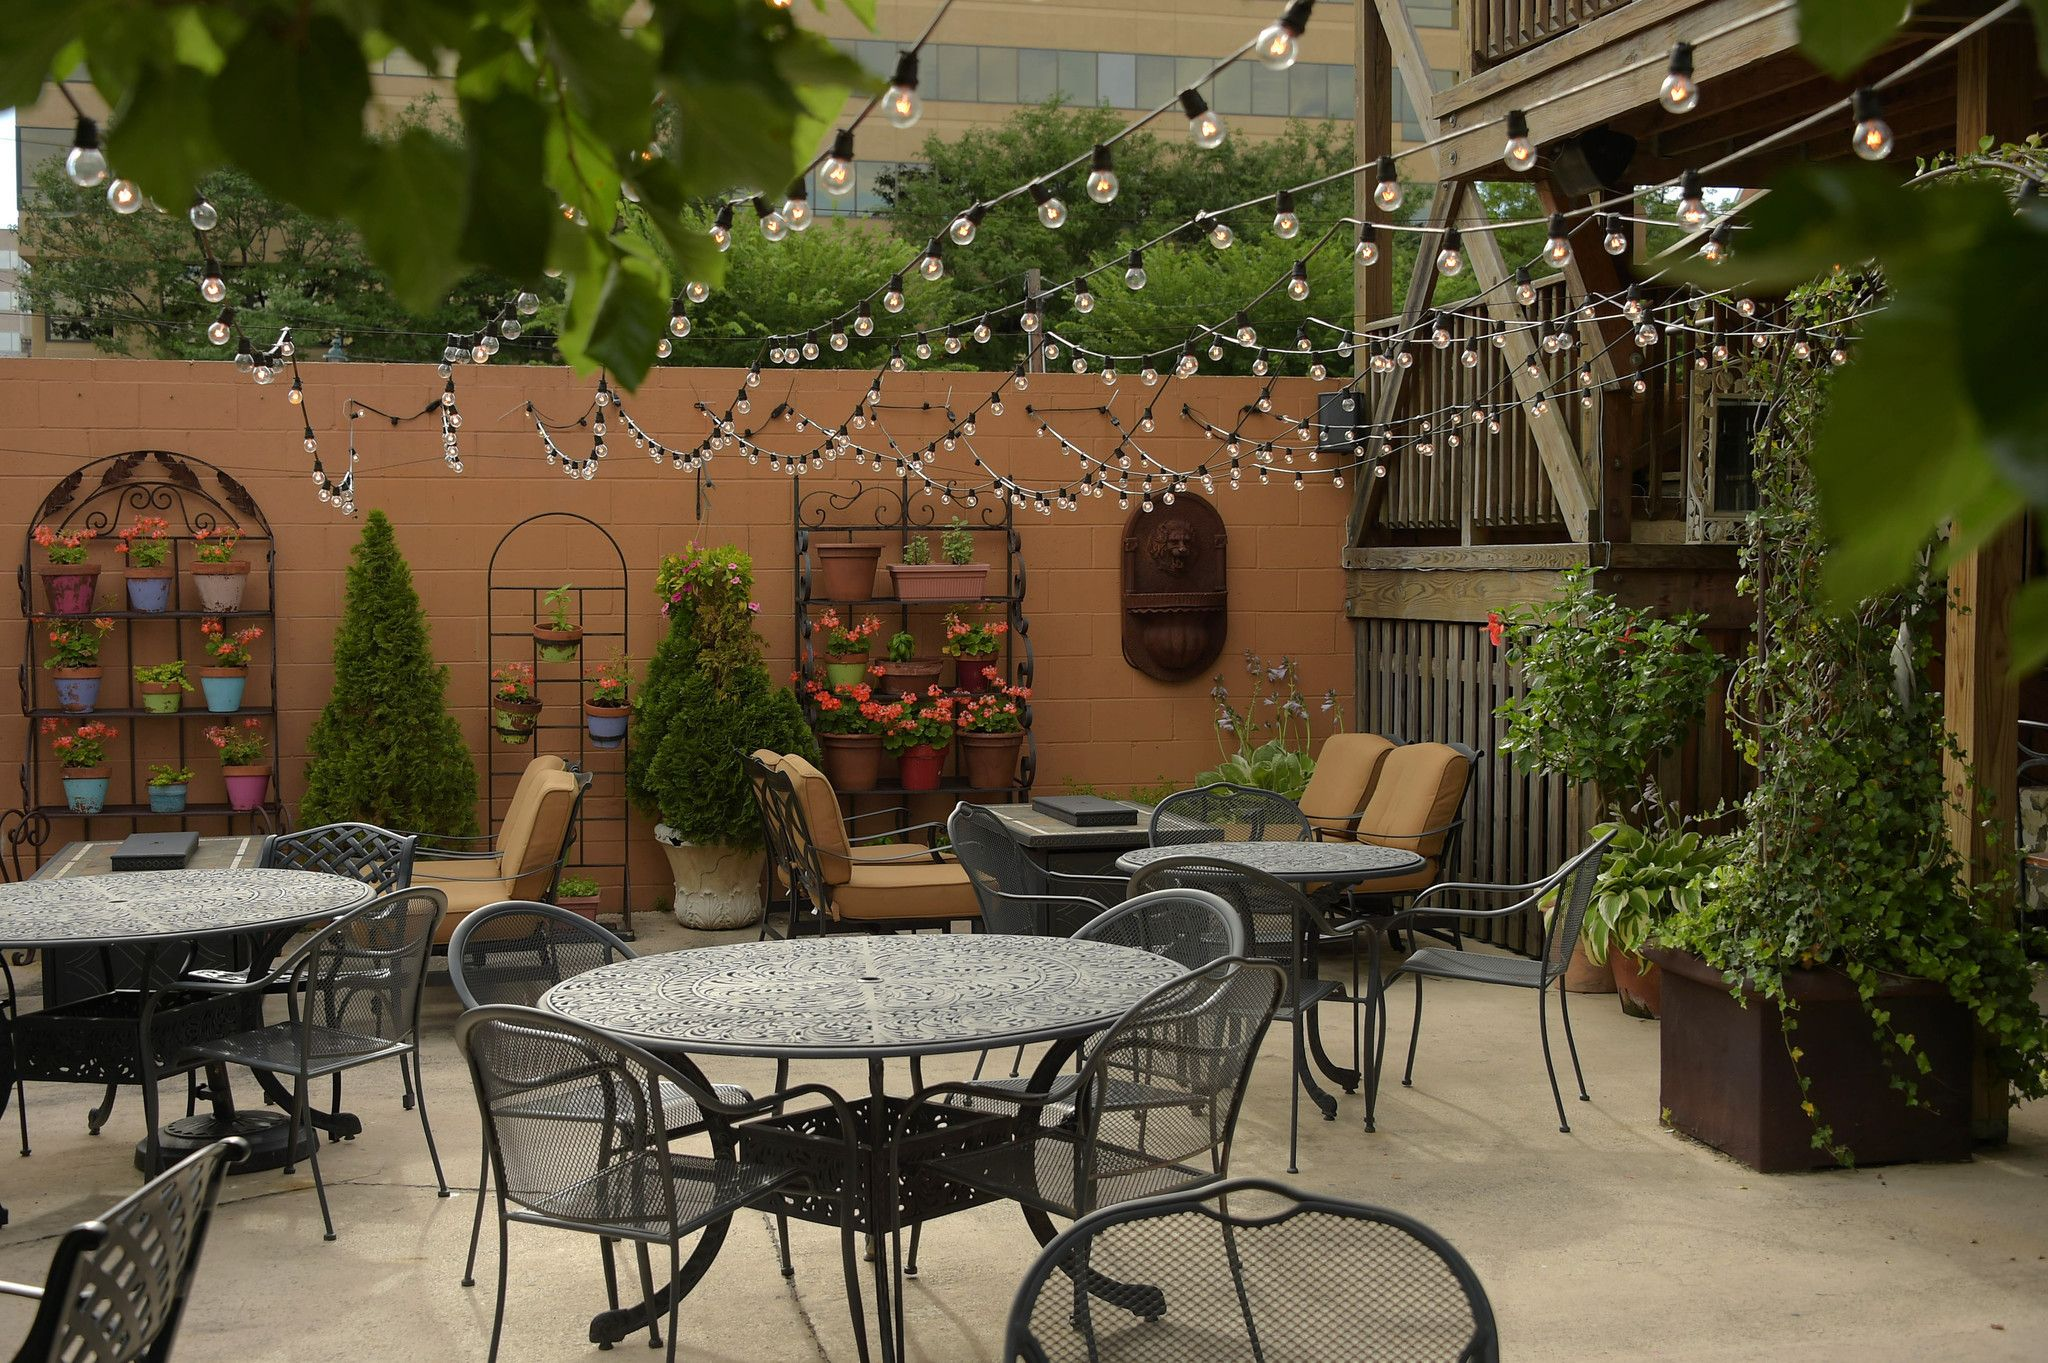 Our Favorite Outdoor Drinking And Dining Spots In And Around Baltimore Outdoor Eating Spaces Outdoor Restaurant Outdoor Dining